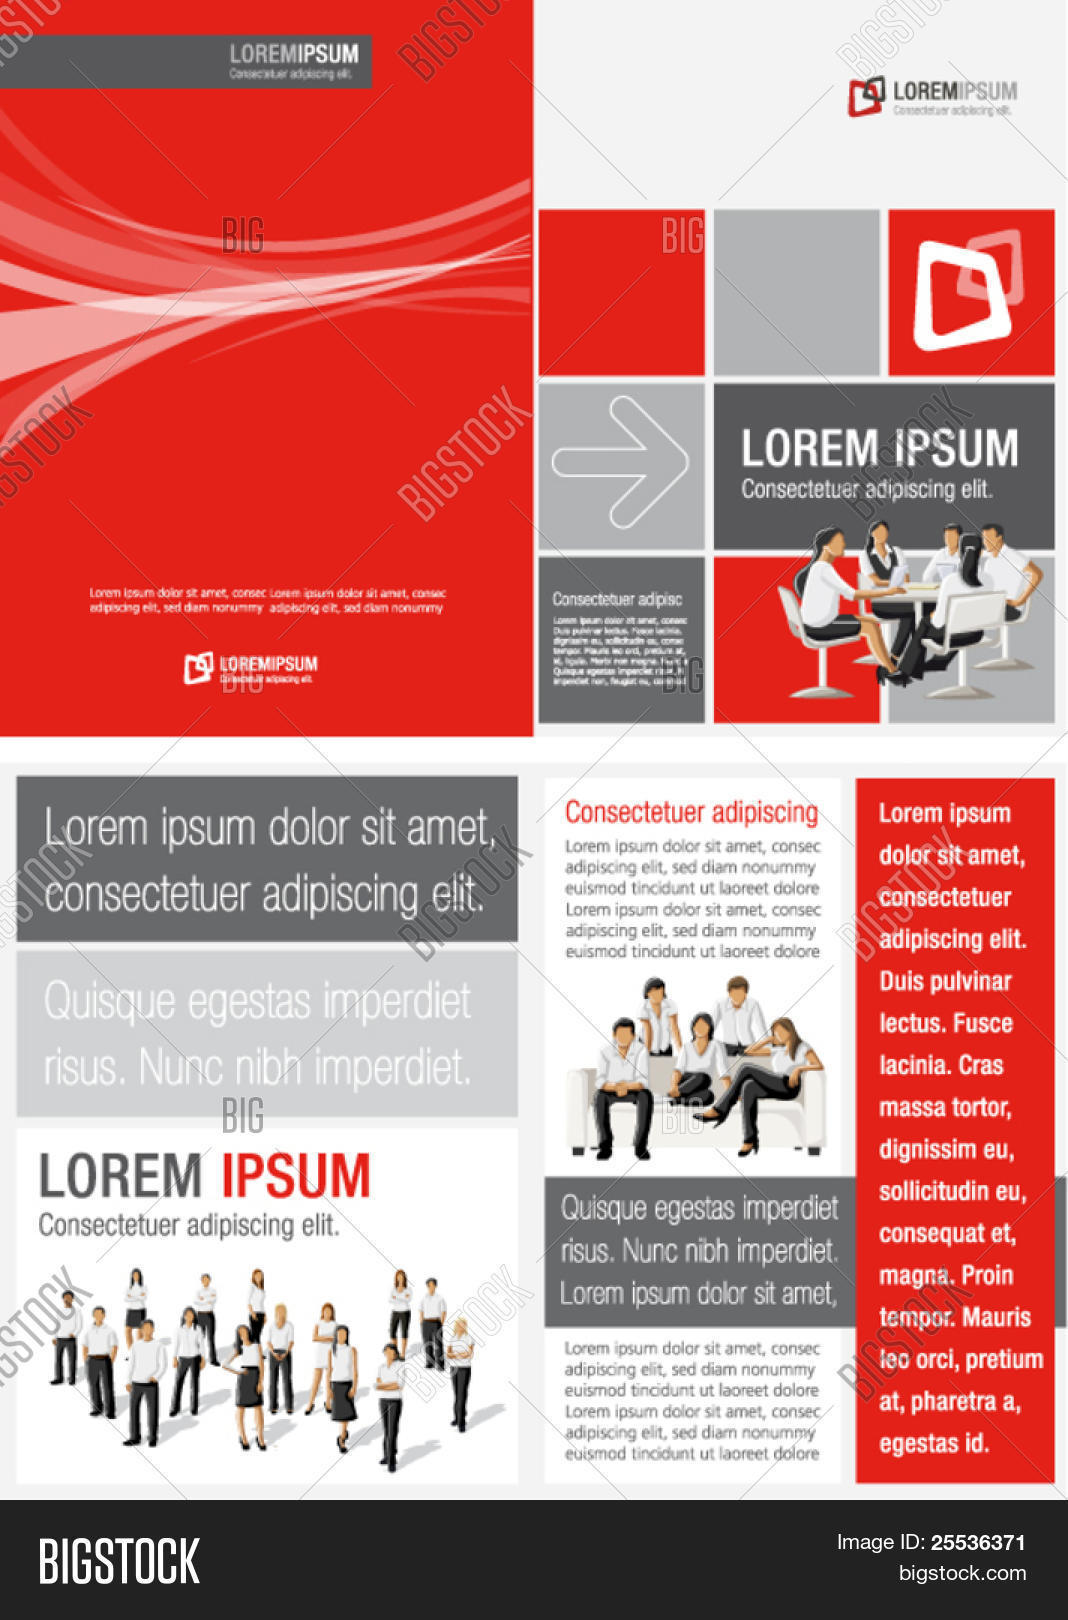 Red ,white And Black Template For Advertising Brochure With Business People  Advertising Brochure Template